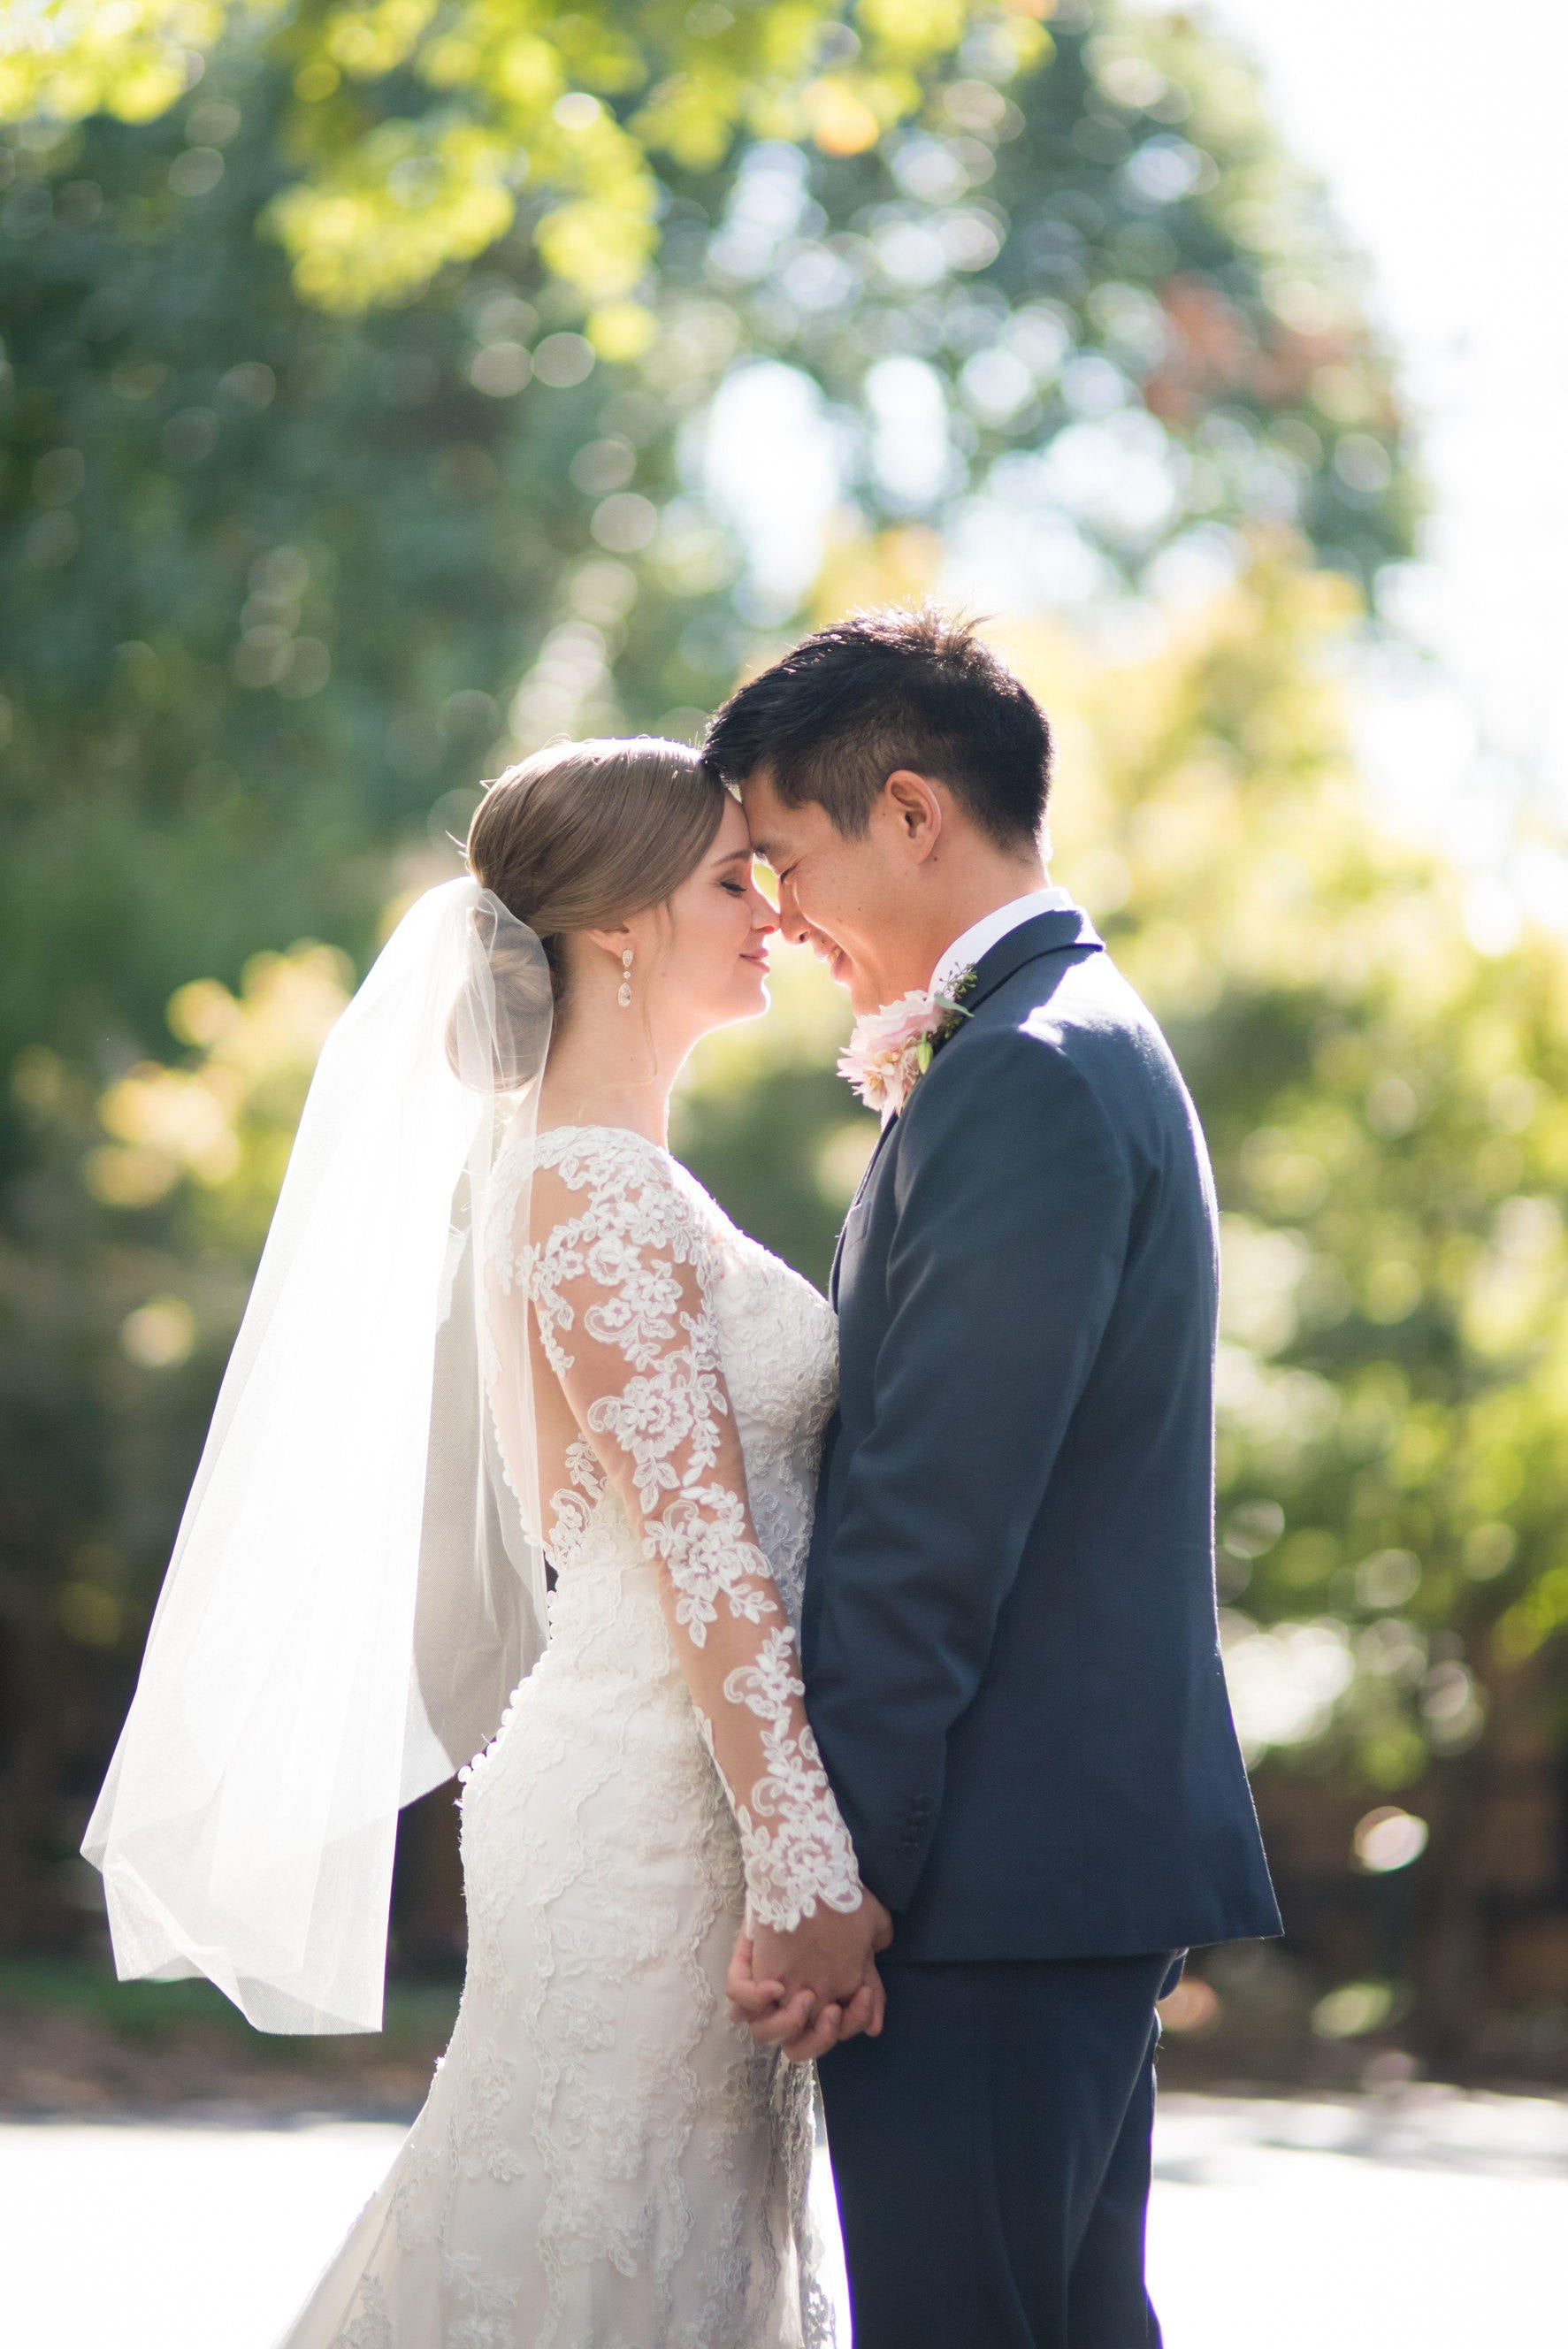 Vintage Rustic Outdoor Wedding: Simple veil and Lace Dress